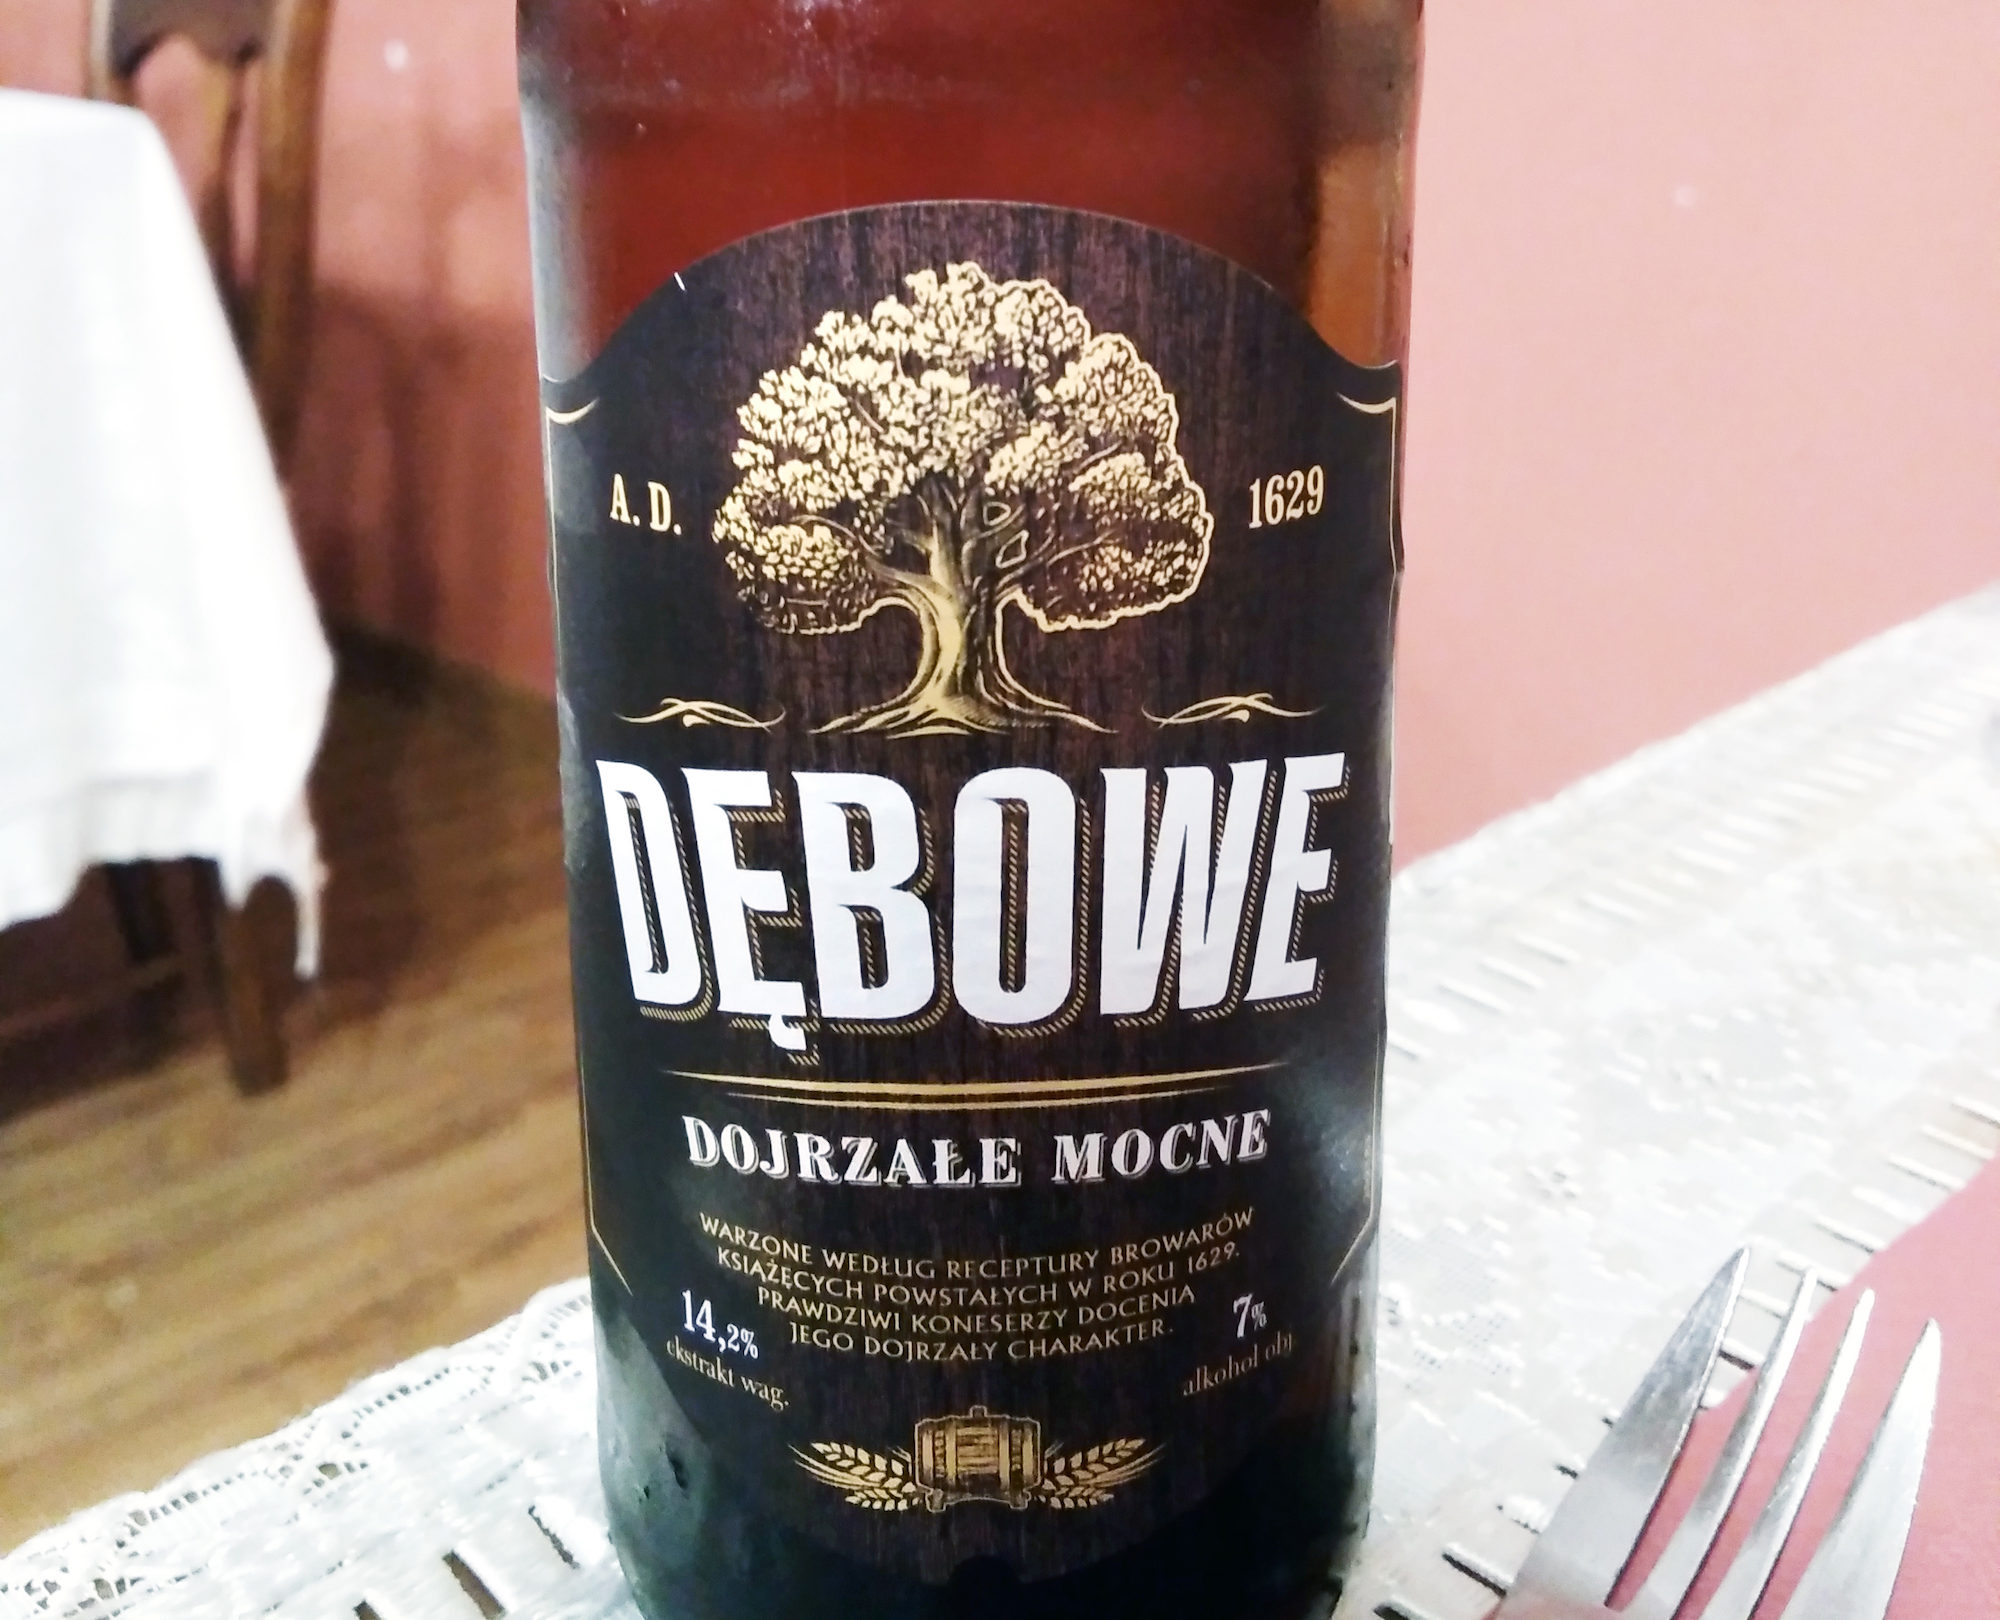 Dębowe (oak) Polish beer